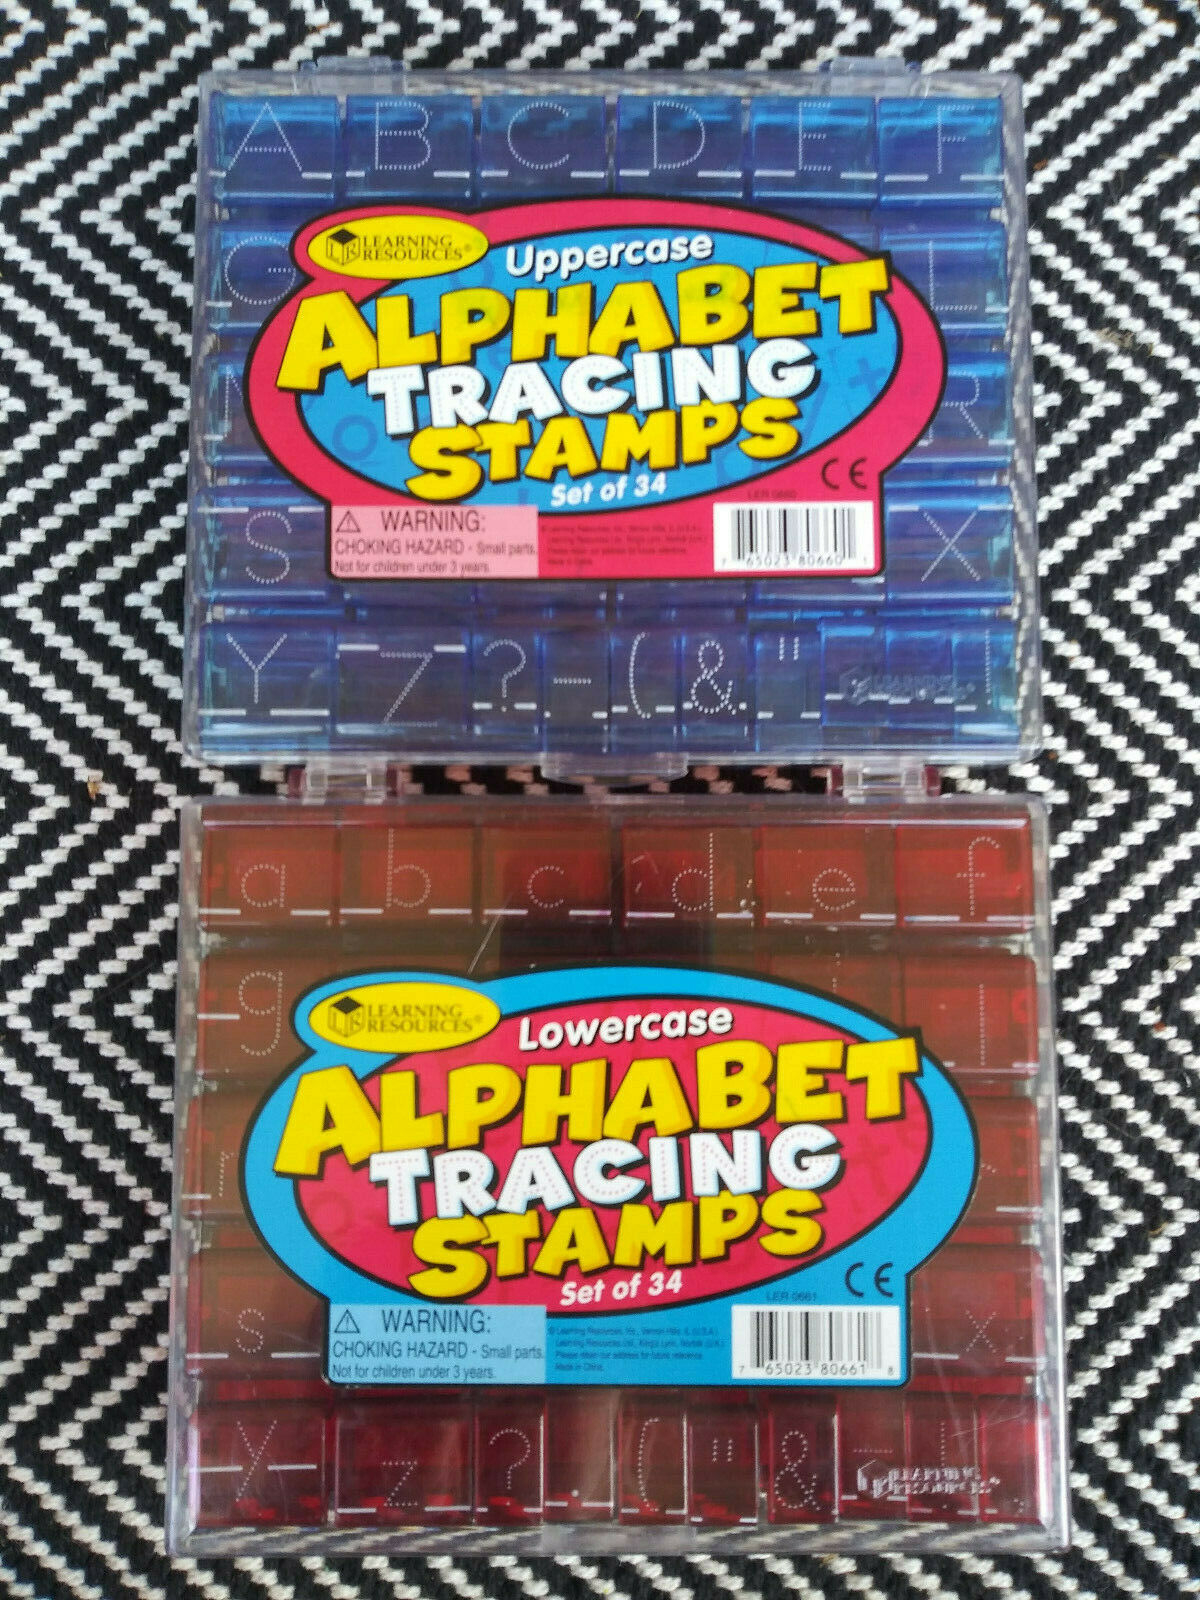 Learning Resources Alphabet Tracing Stamps - Uppercase And Lowercase Sets with regard to Alphabet Tracing Stamps